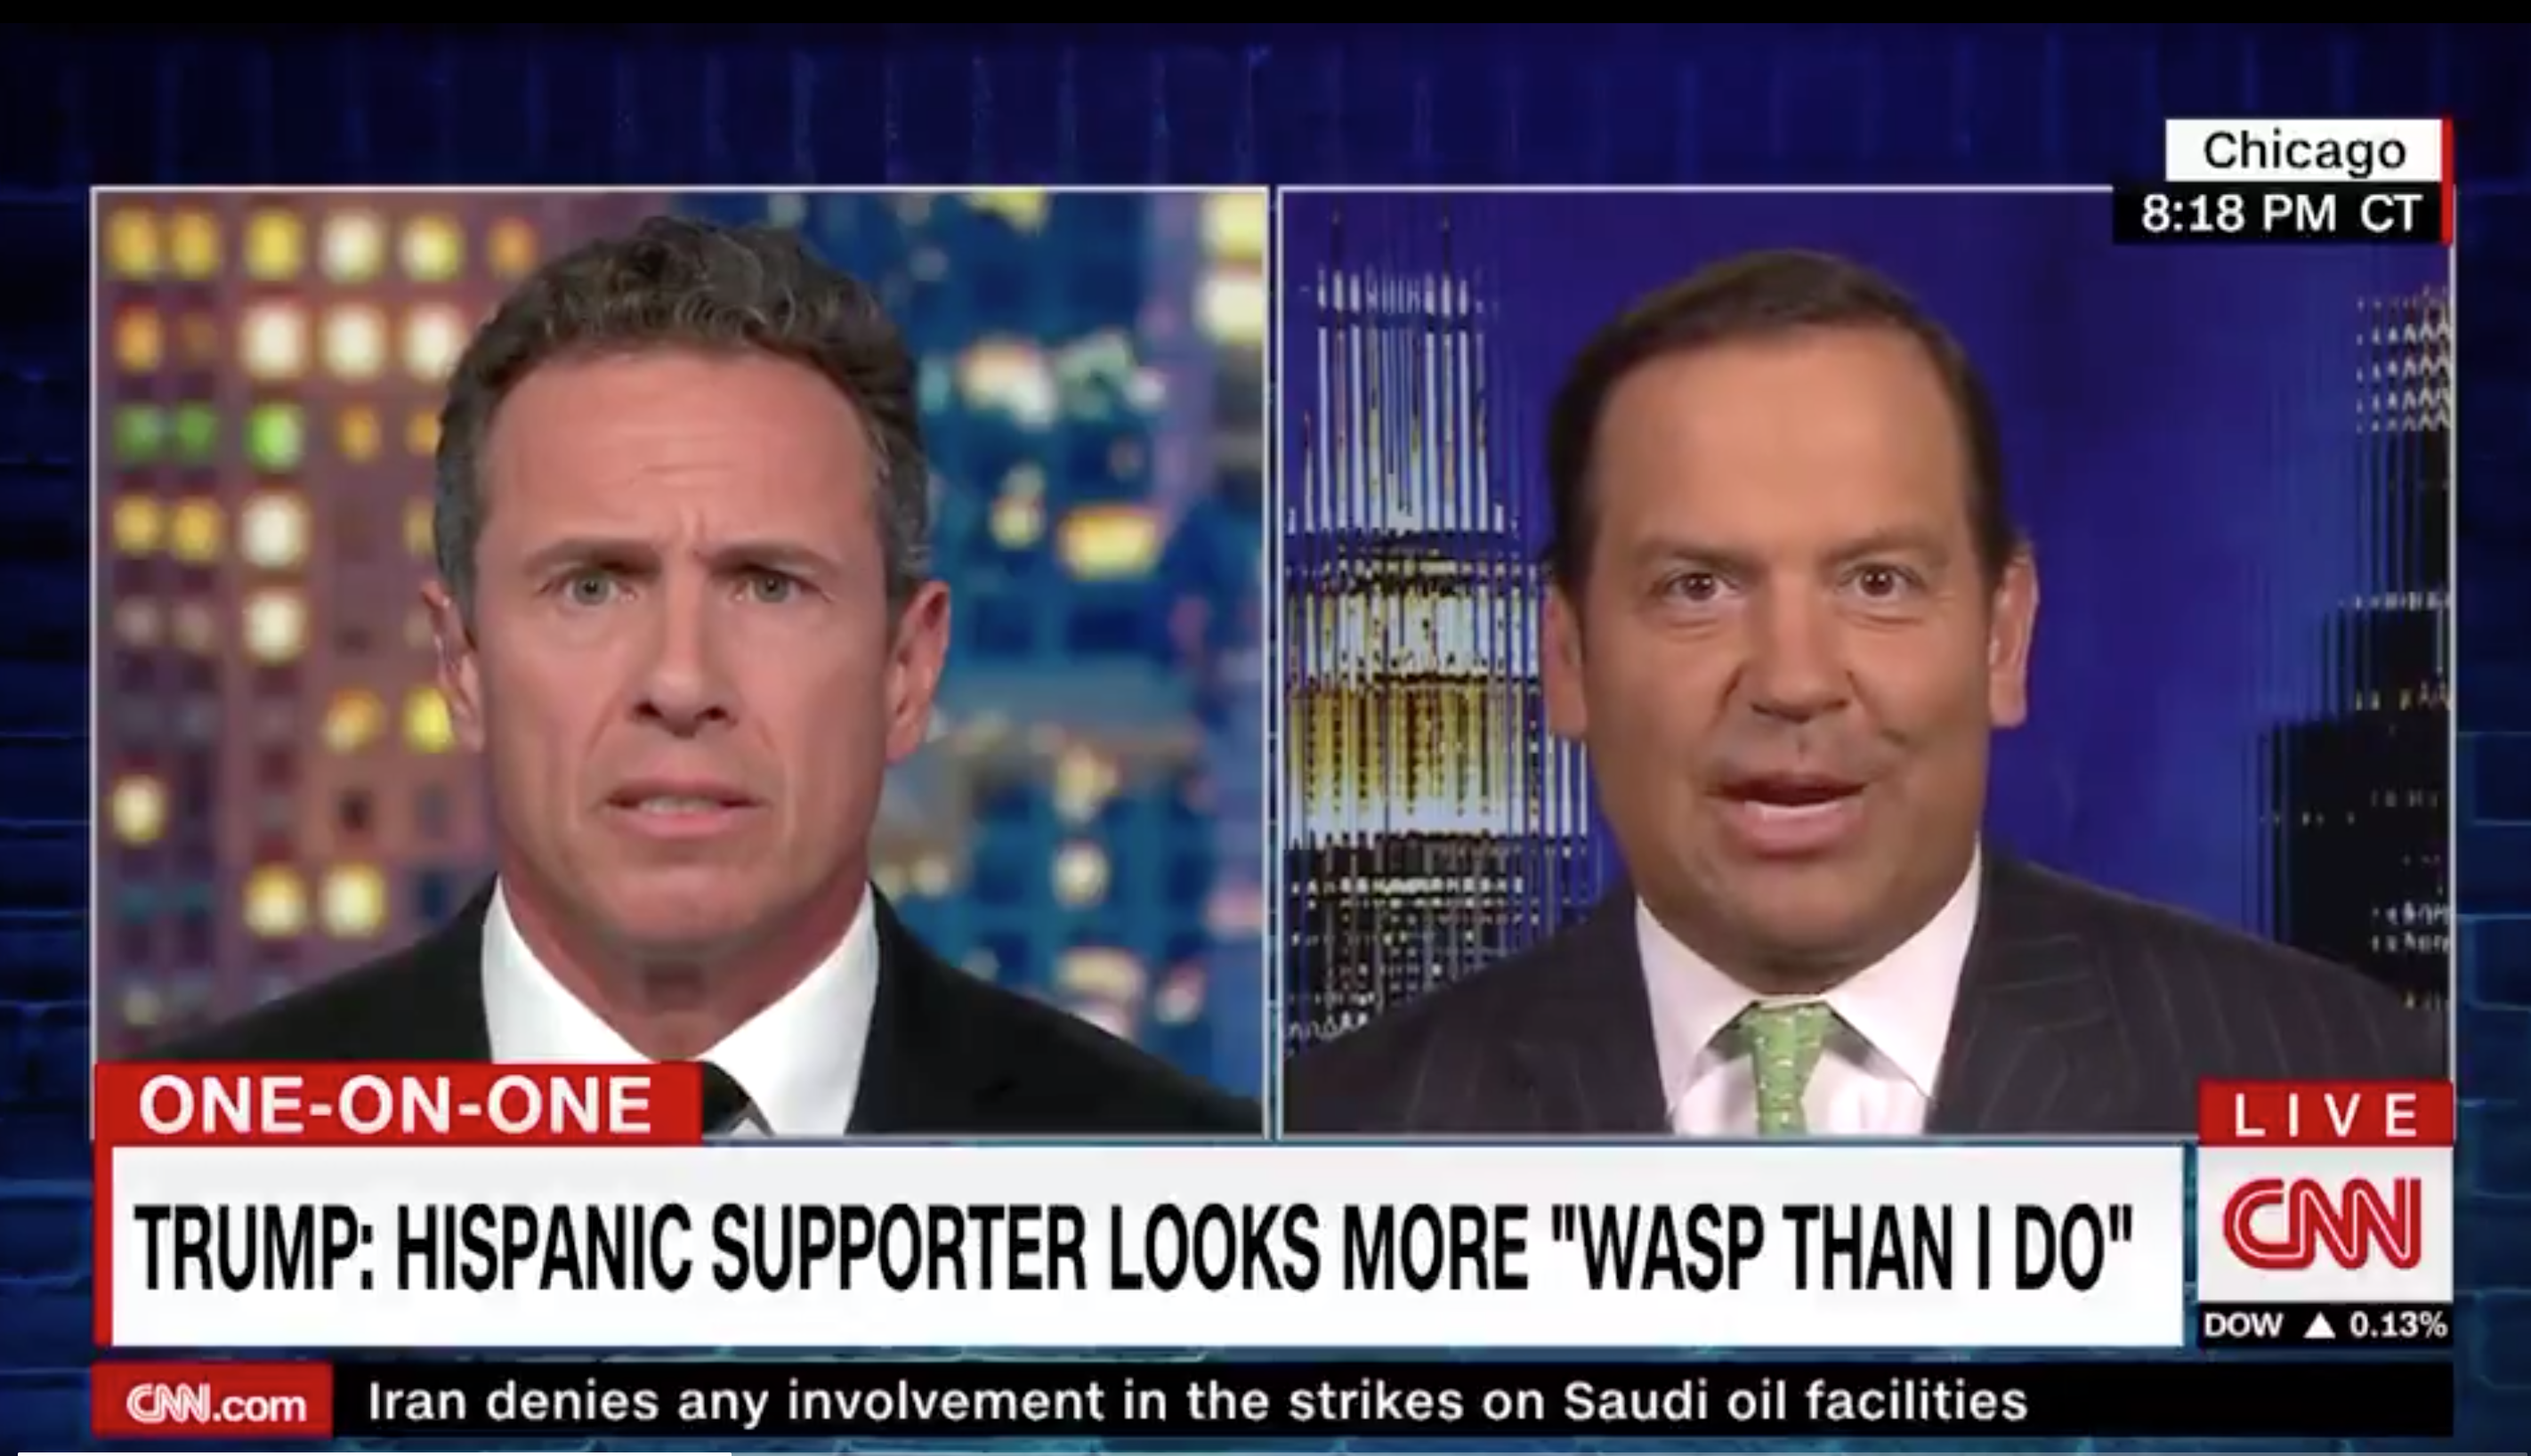 CNN contributor accuses Chris Cuomo of spreading 'fake news' about Trump in heated clash thumbnail